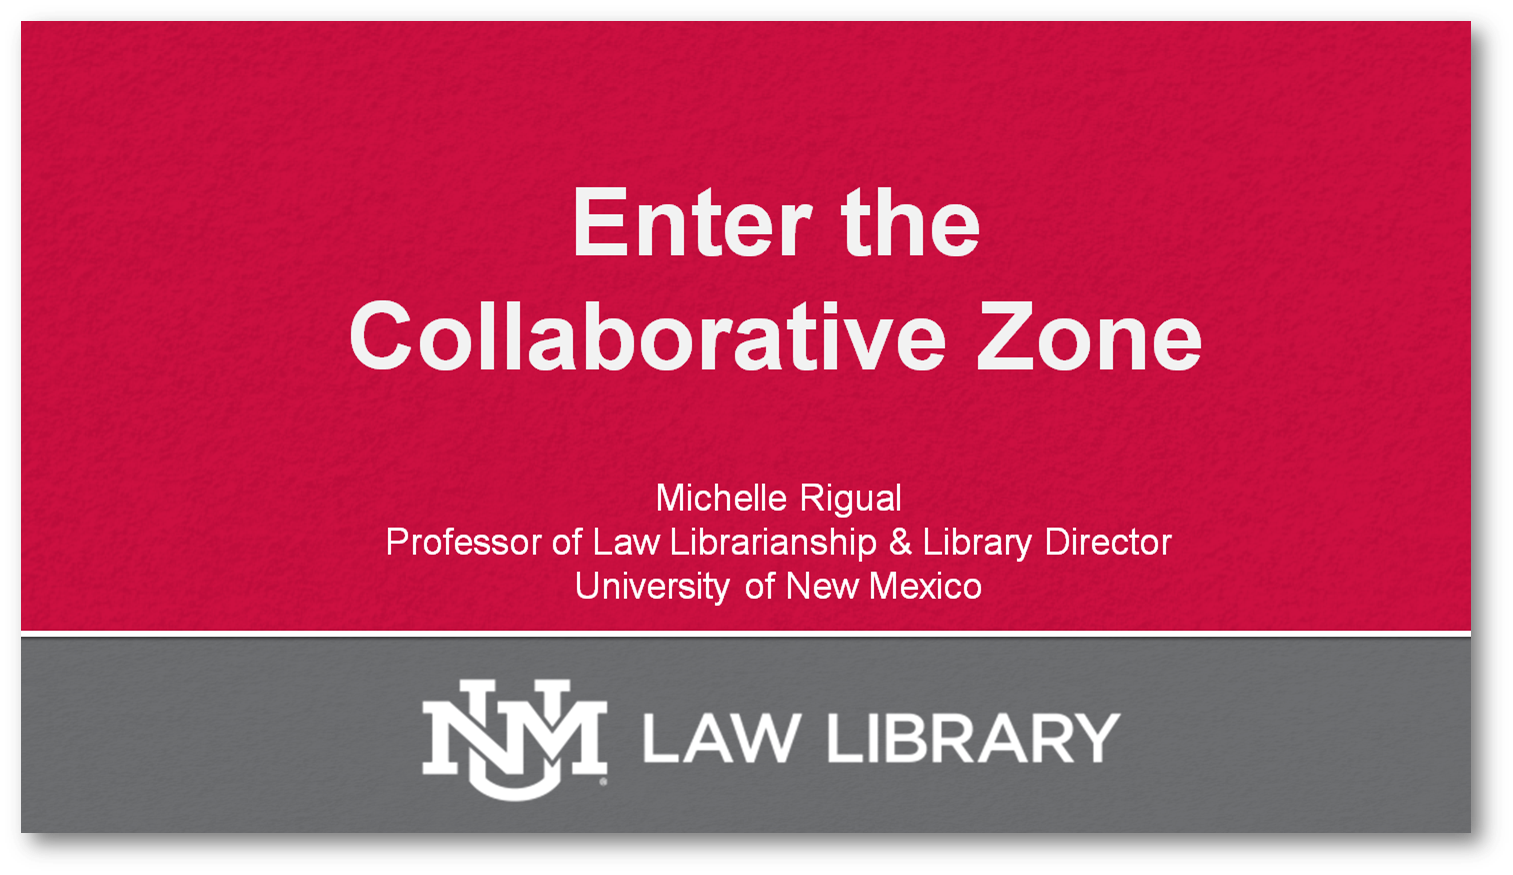 Click to download program materials for Enter the Collaborative Zone